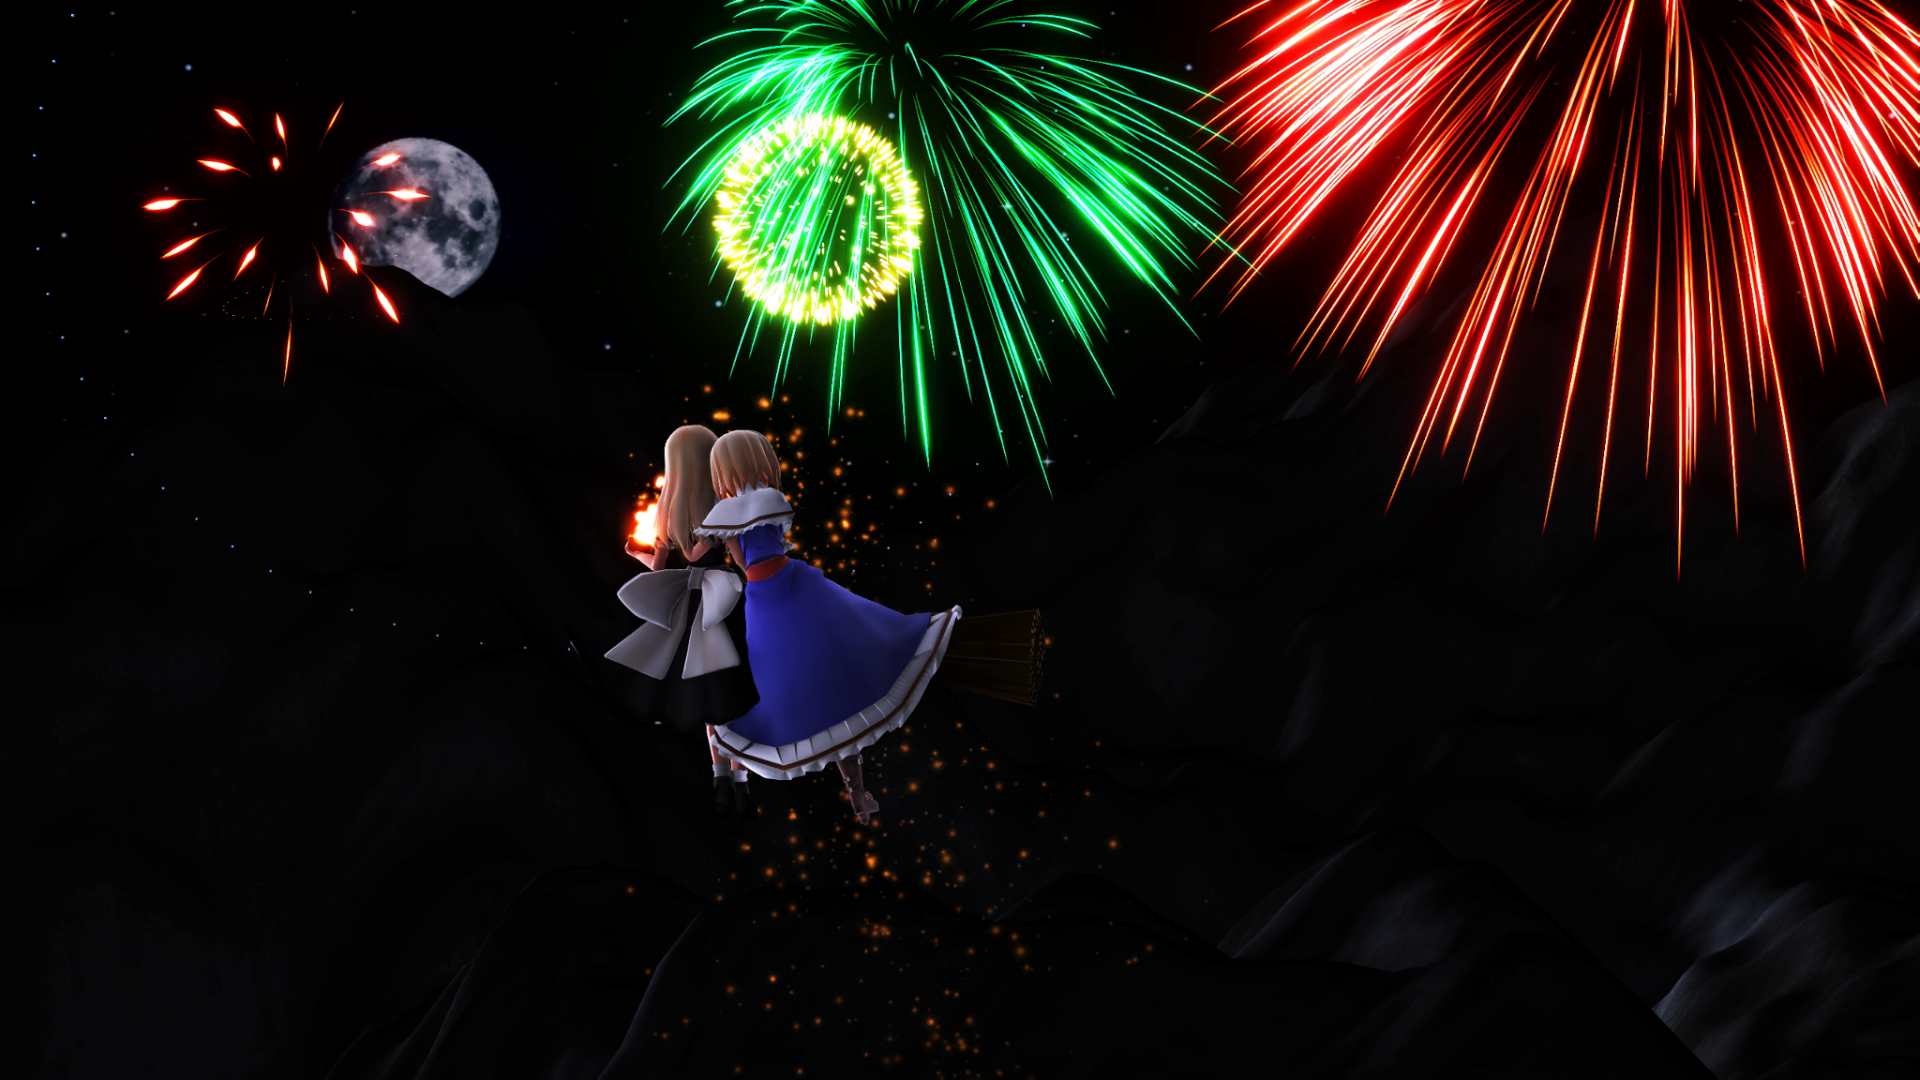 Happy New Year by headstert